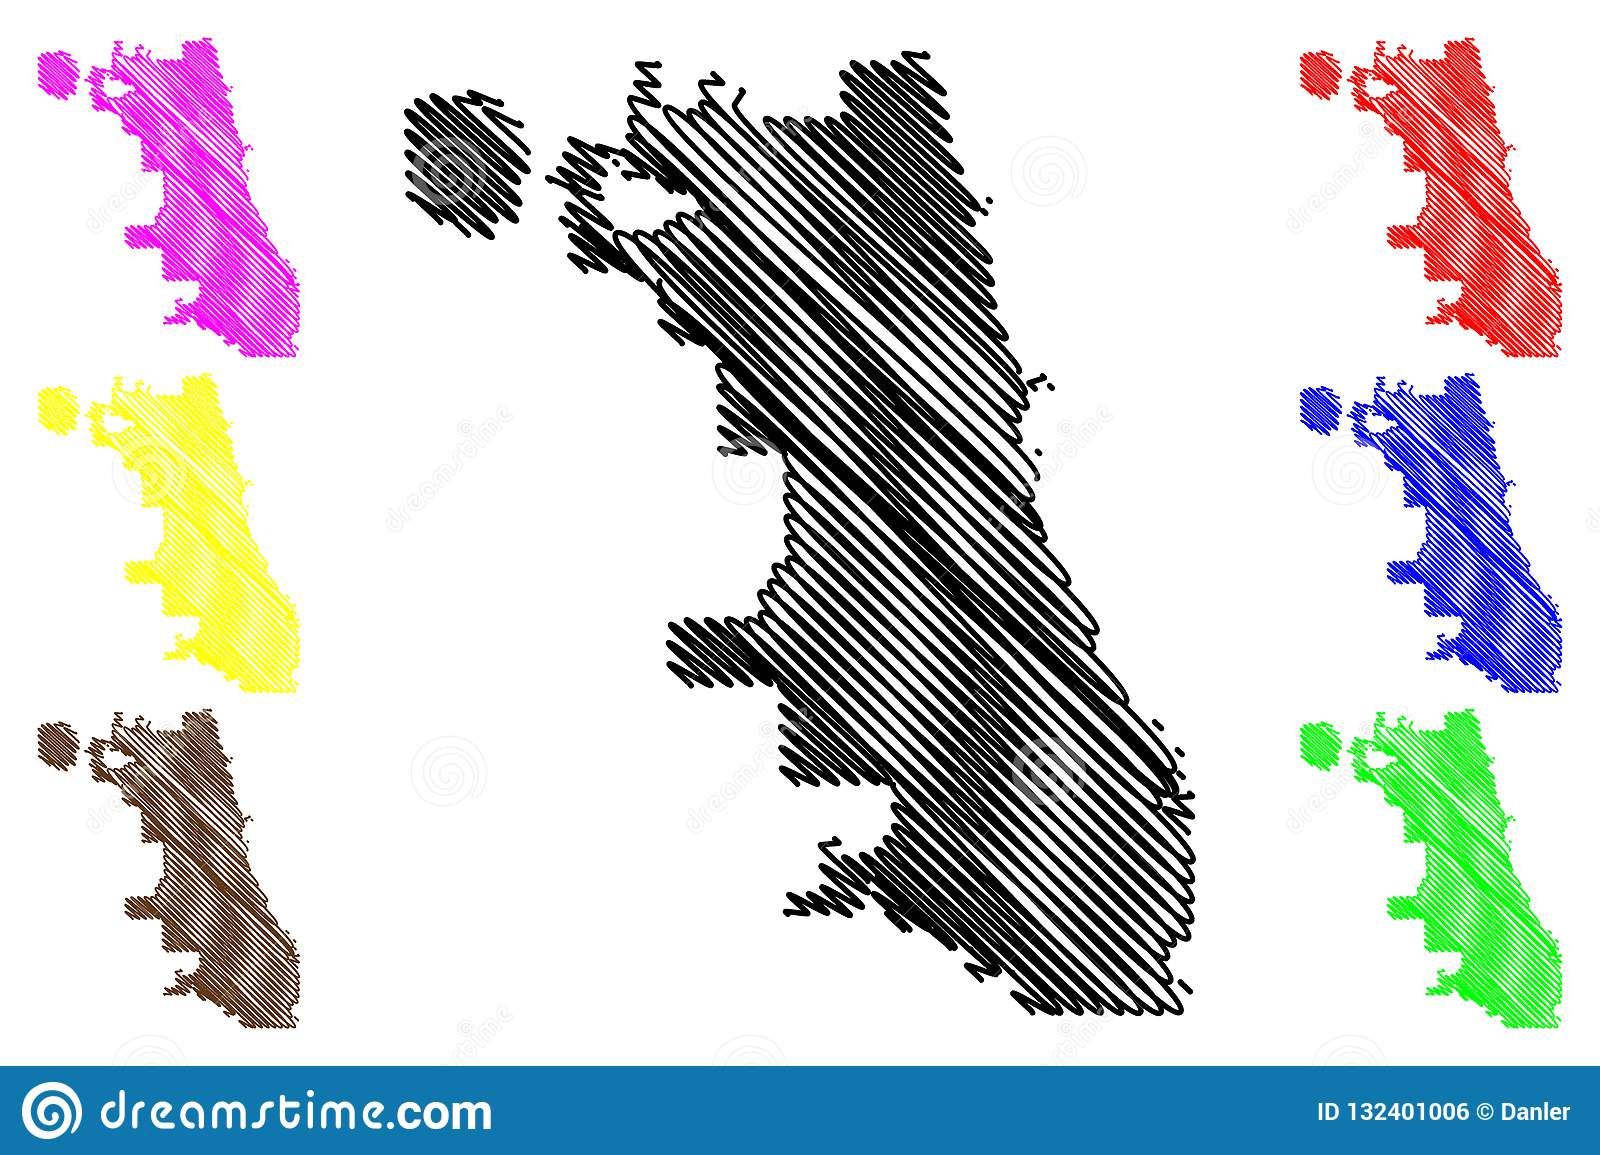 Chicago City map vector stock vector. Illustration of graphic ...